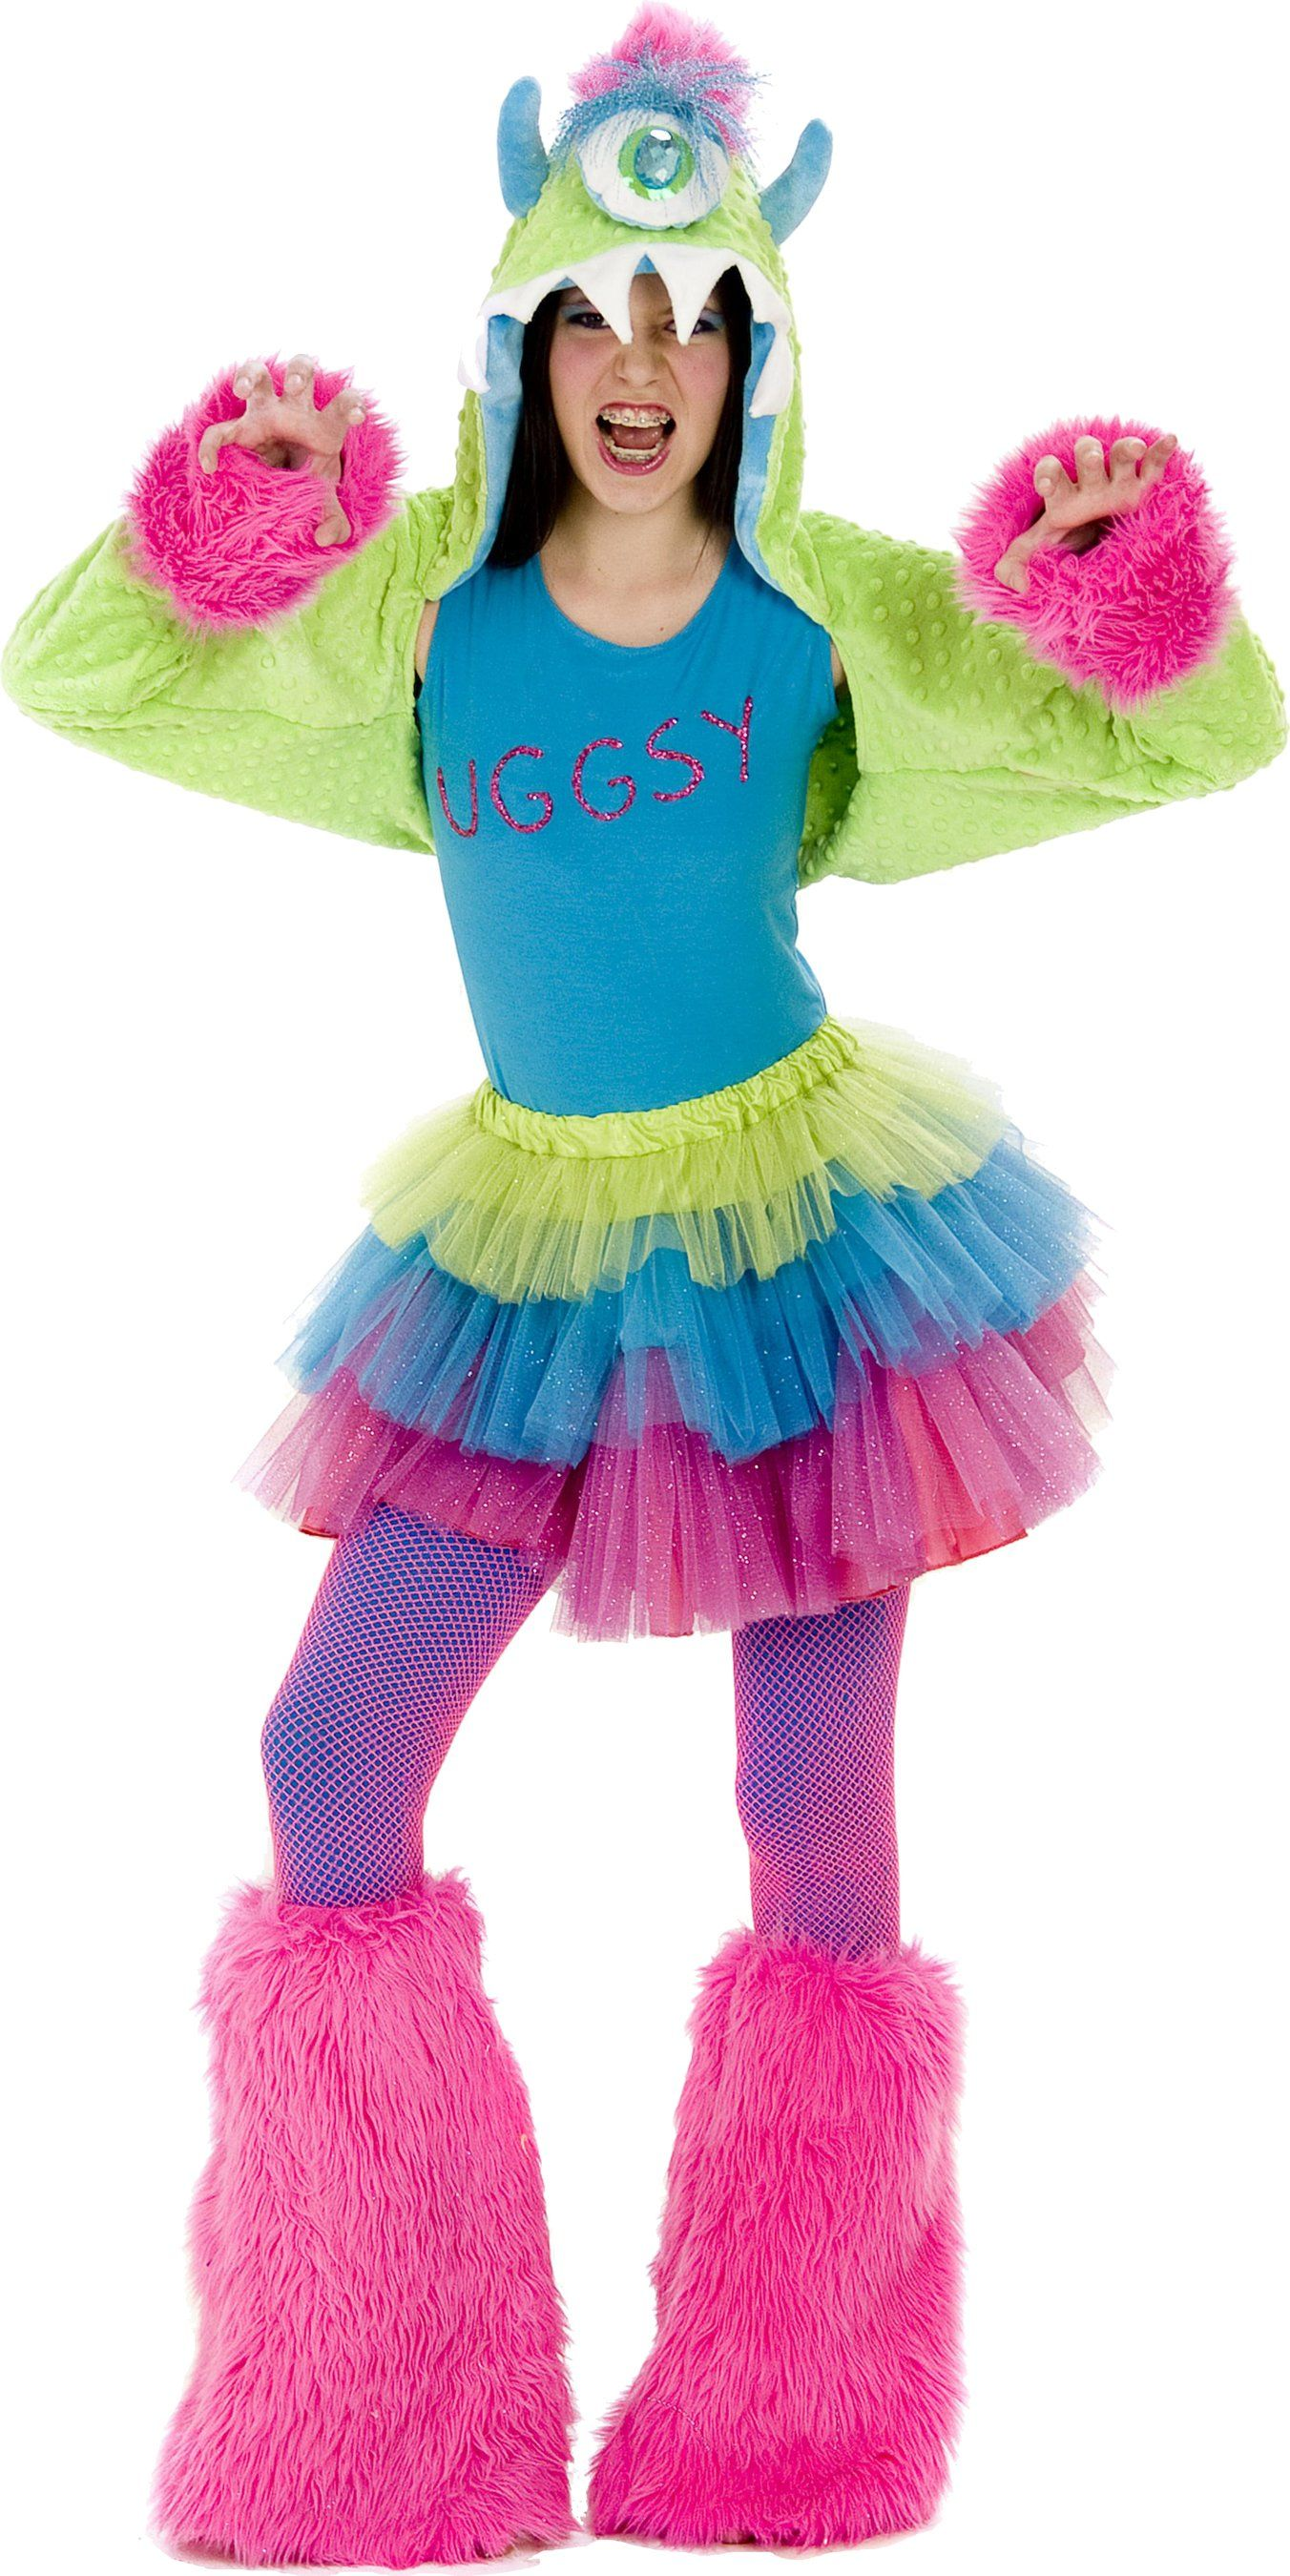 Friendly monster costume google search spring sing retrobution